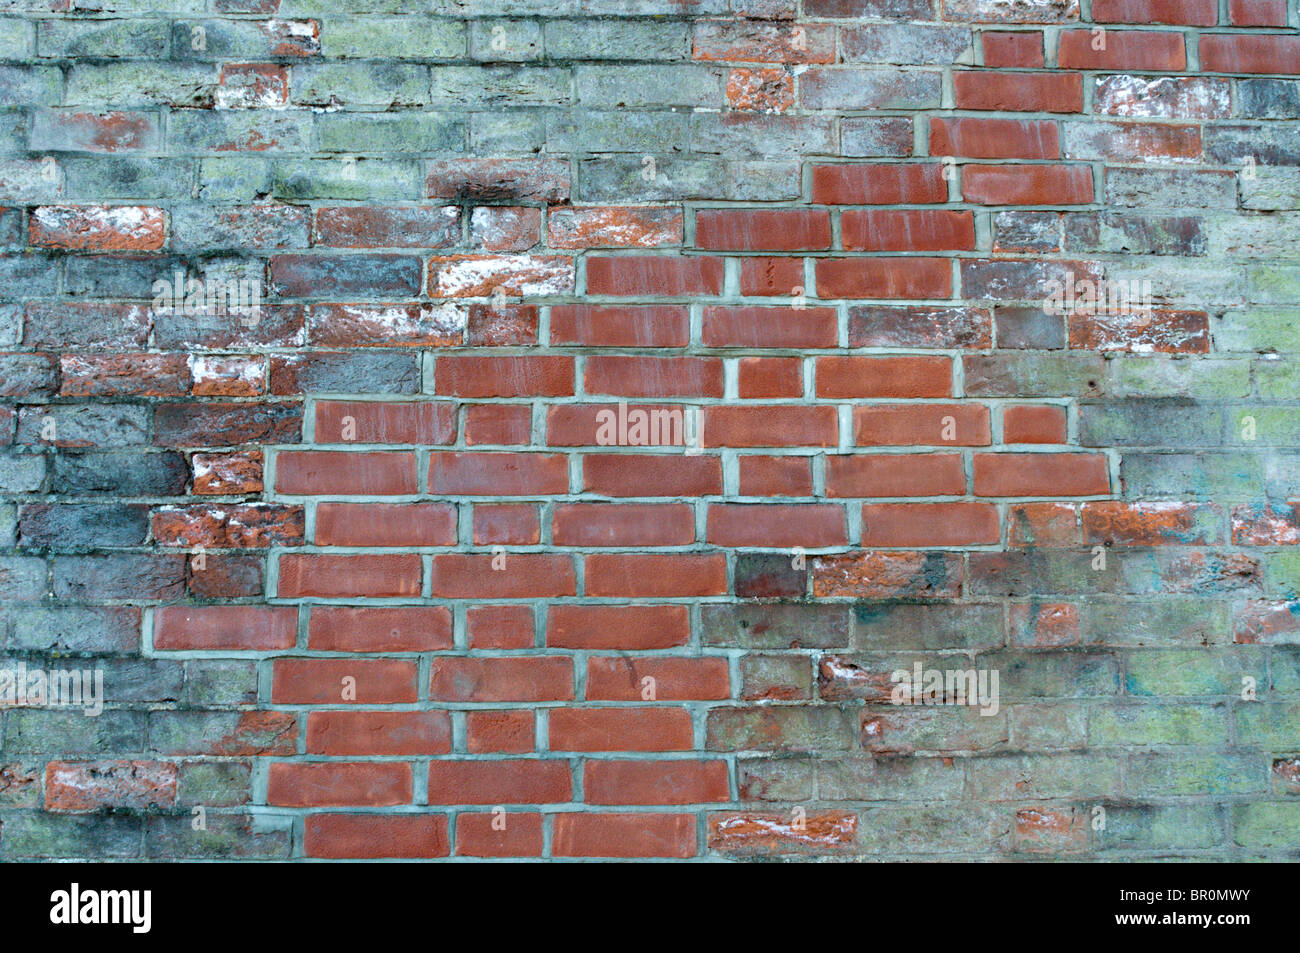 A crack in an old brick wall has been cut back and repaired with new red bricks - Stock Image